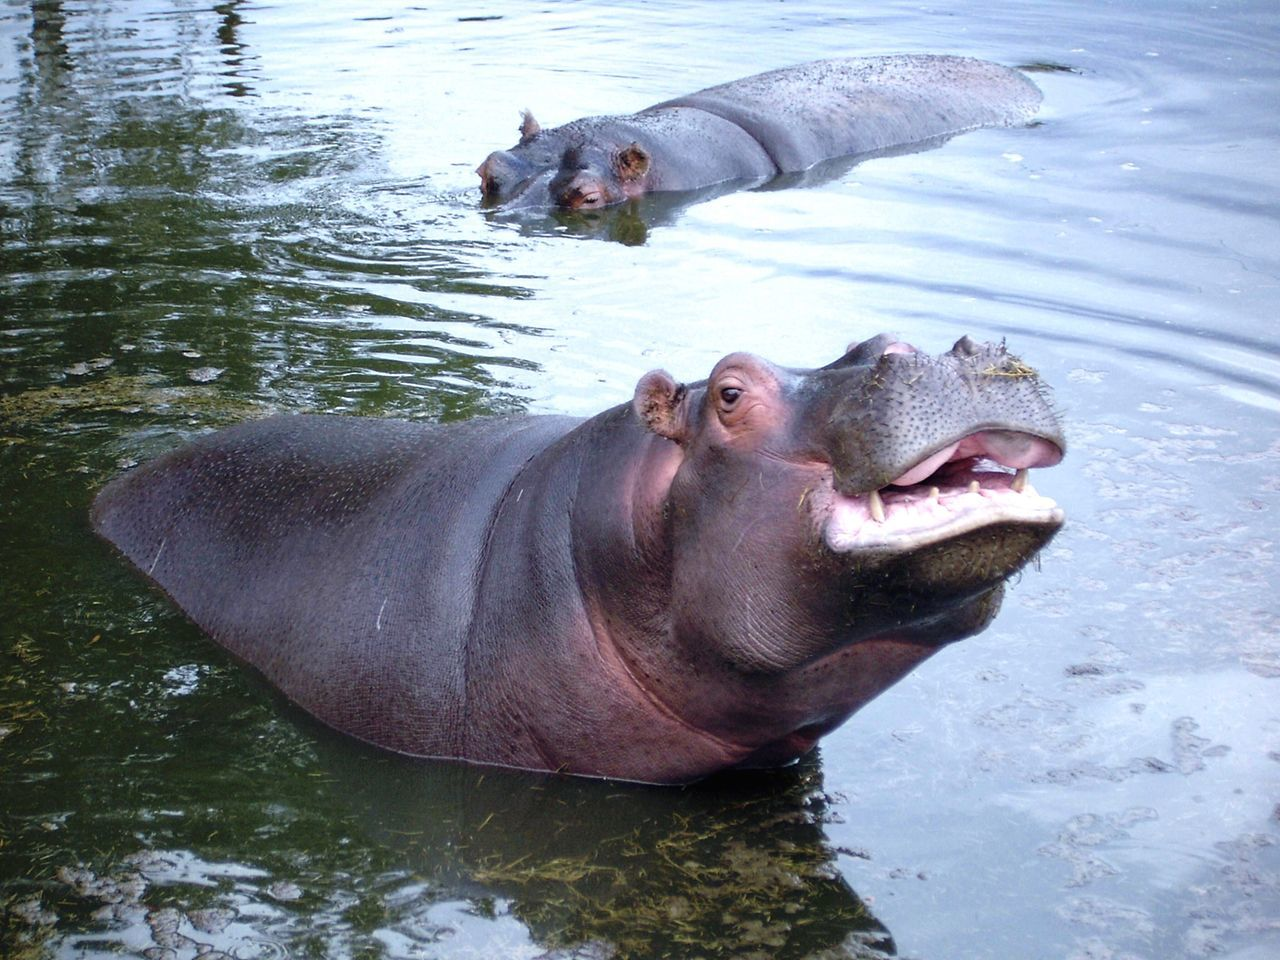 Hippo Hippopotamus Animal Wildlife Zoo Water Focus On Foreground No People Whipsnade Zoo EyeEm